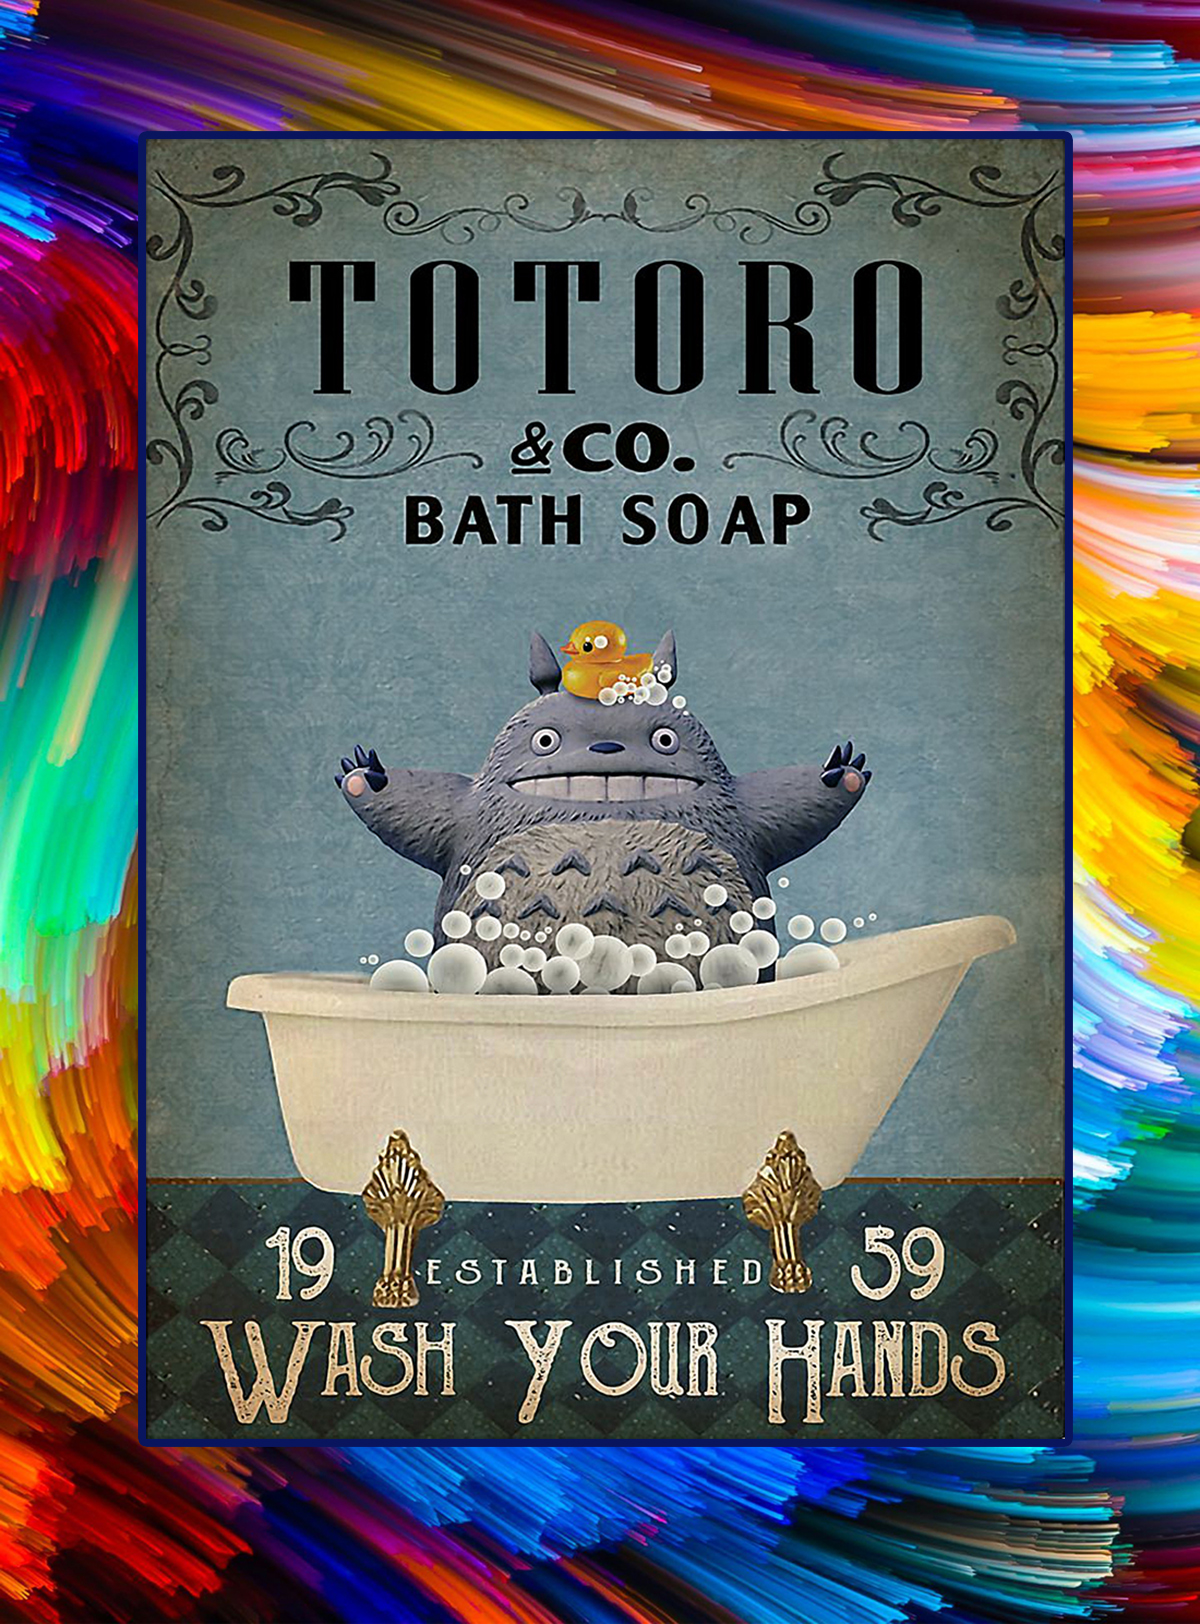 Totoro co bath soap wash your hands poster